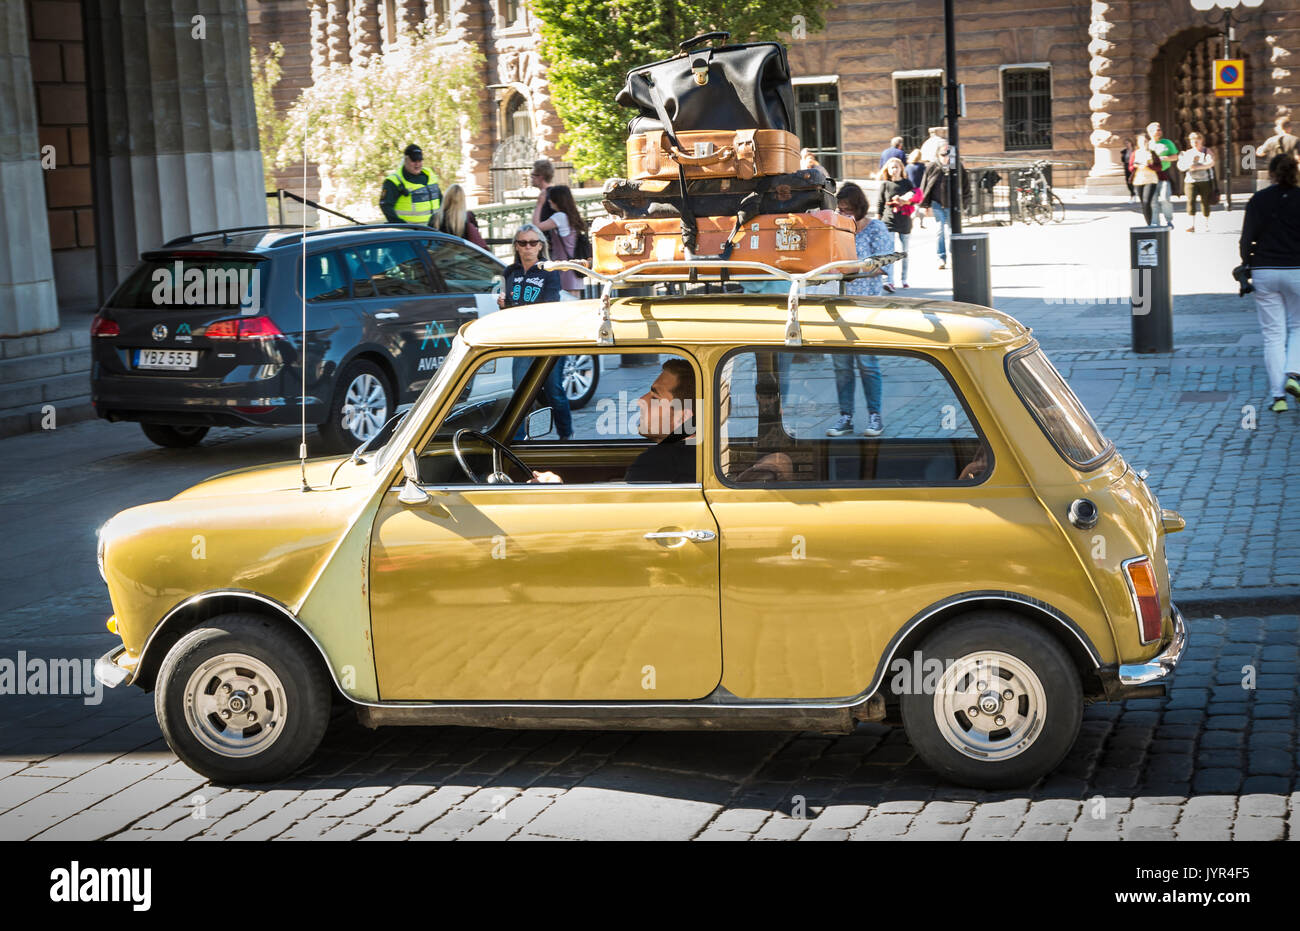 Yellow classic Mini Cooper with old fashioned suitcases strapped to the roof rack going on holiday - Stock Image